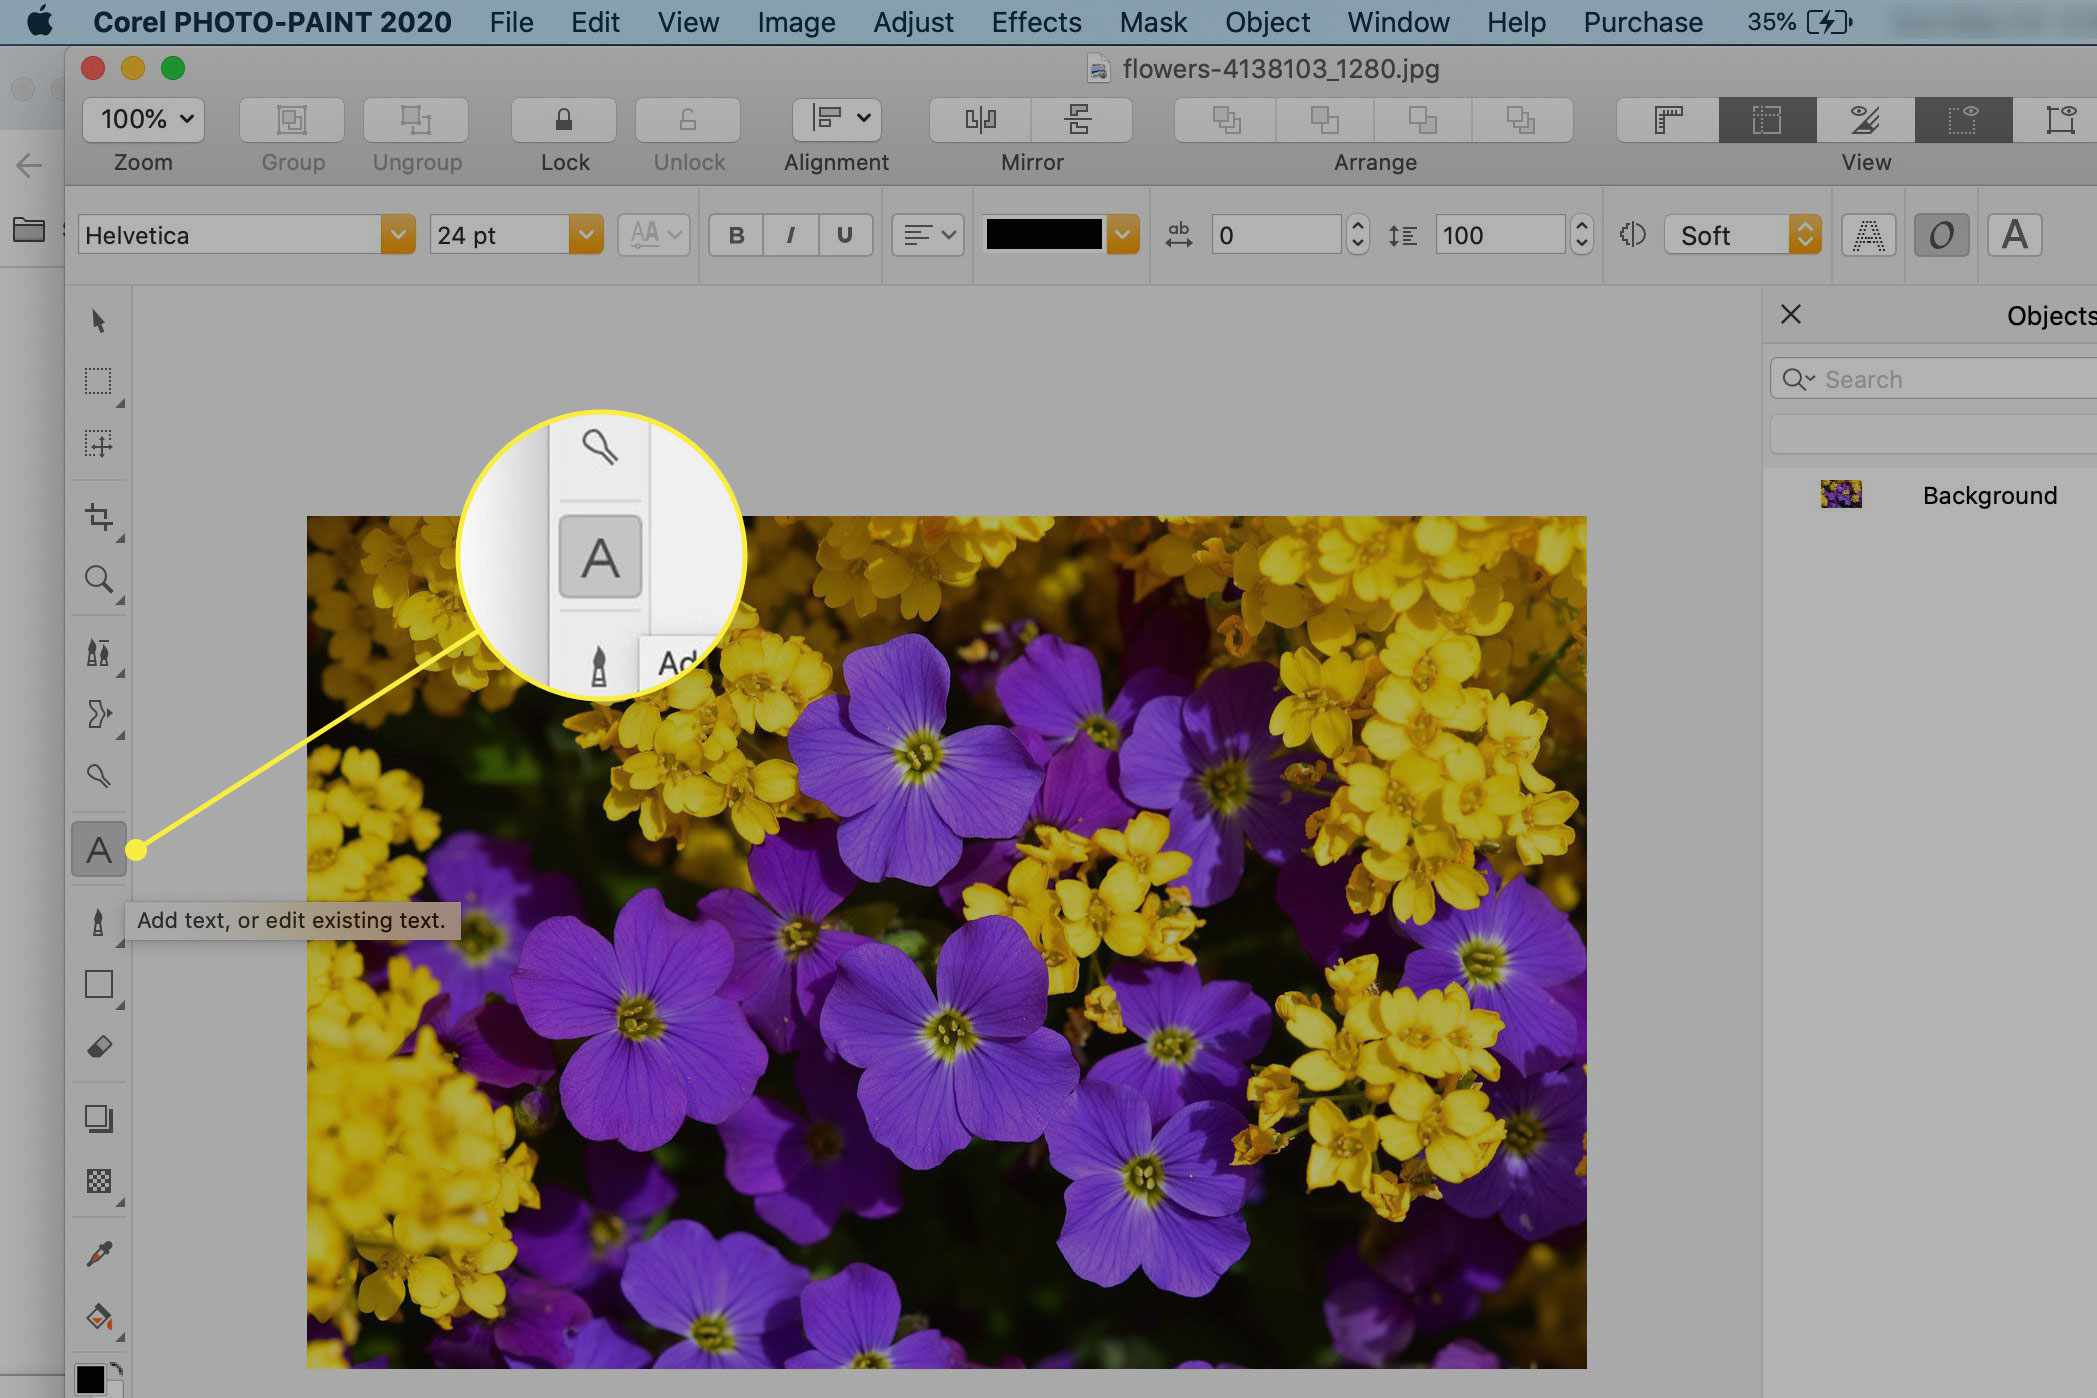 The Text tool in Corel Photo-Paint